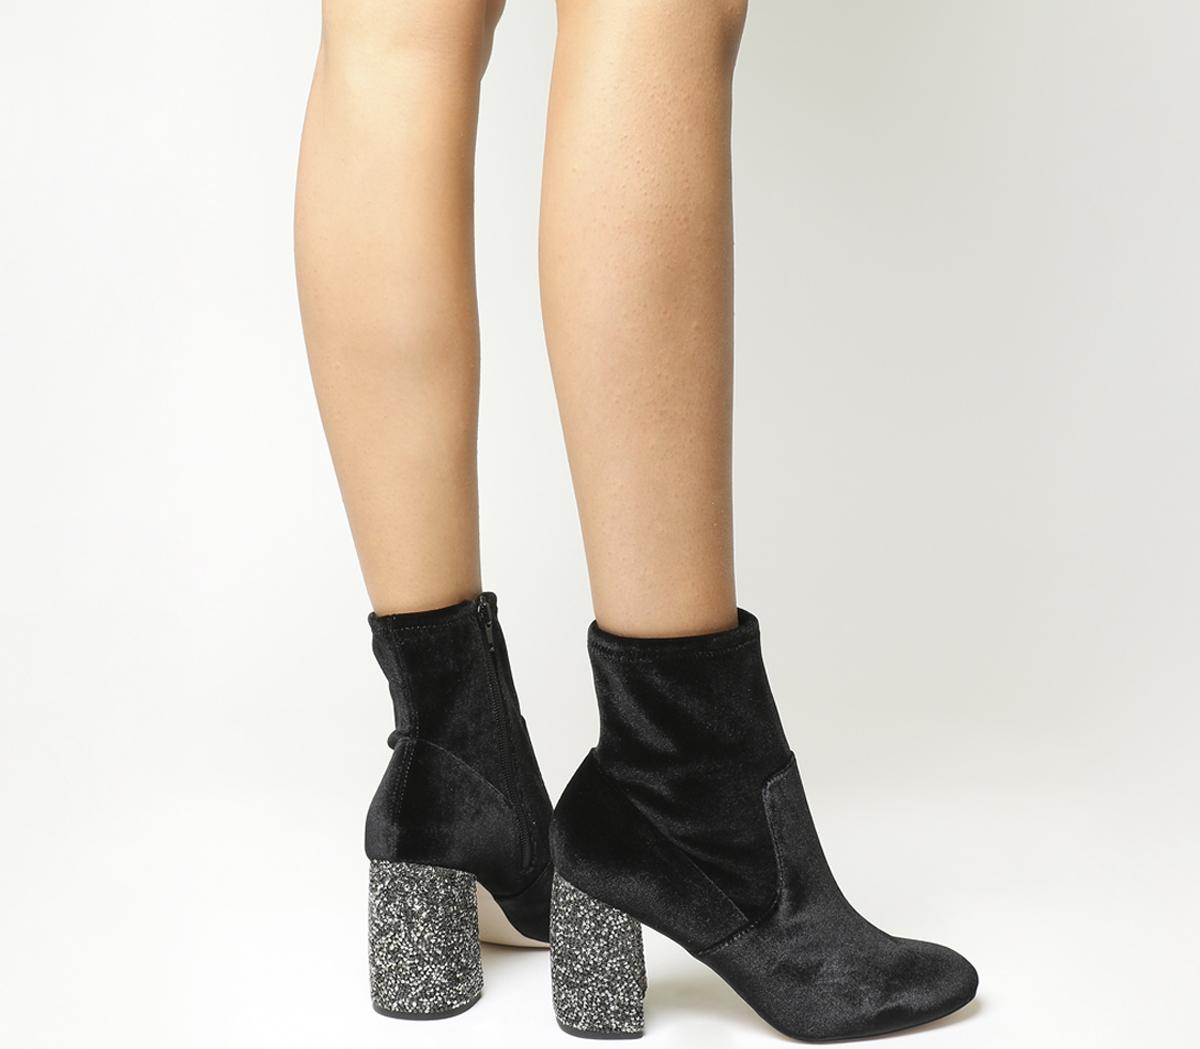 Alter Ego High Cut Boots